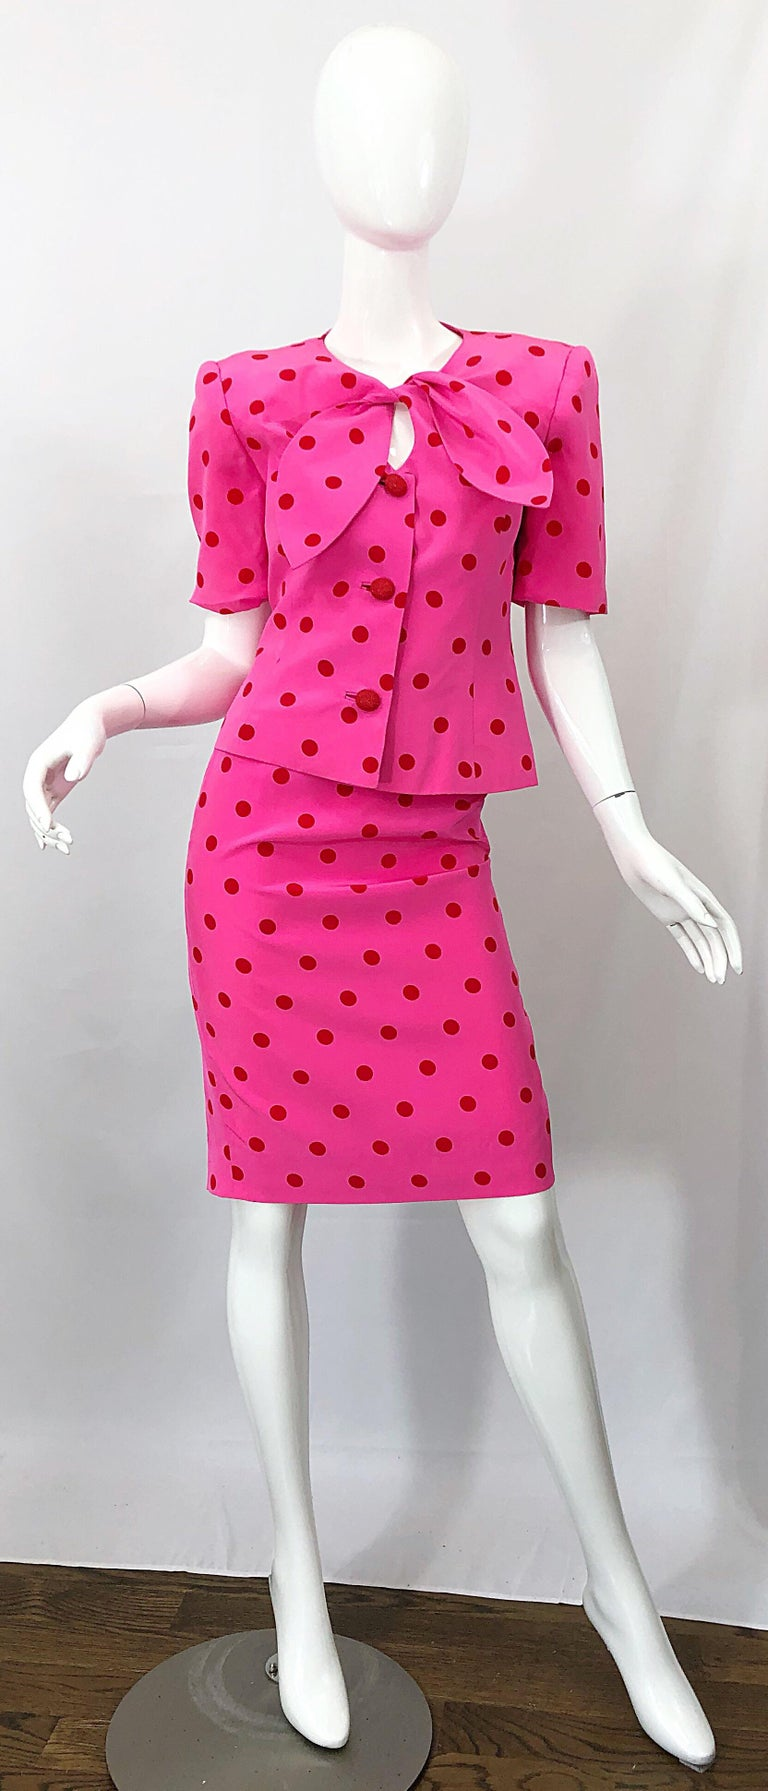 1990s David Hayes for Saks 5th Avenue Hot Pink Red Polka Dot Vintage Skirt Suit For Sale 9